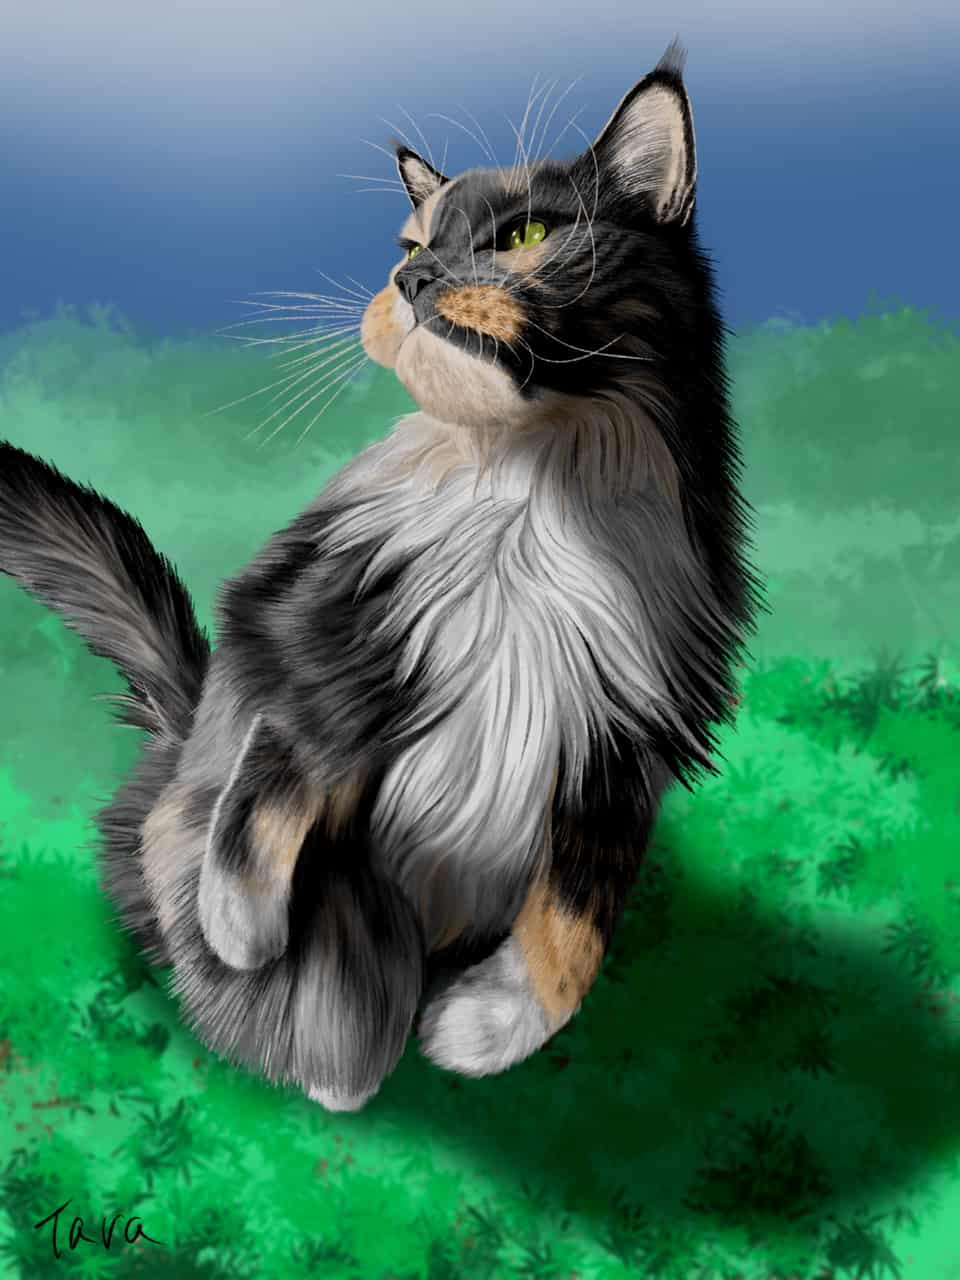 メインクーン5 Illust of ekadhooj cat 猫絵 painting ペイント kawaii drawing animal メインクーン 絵画 illustration